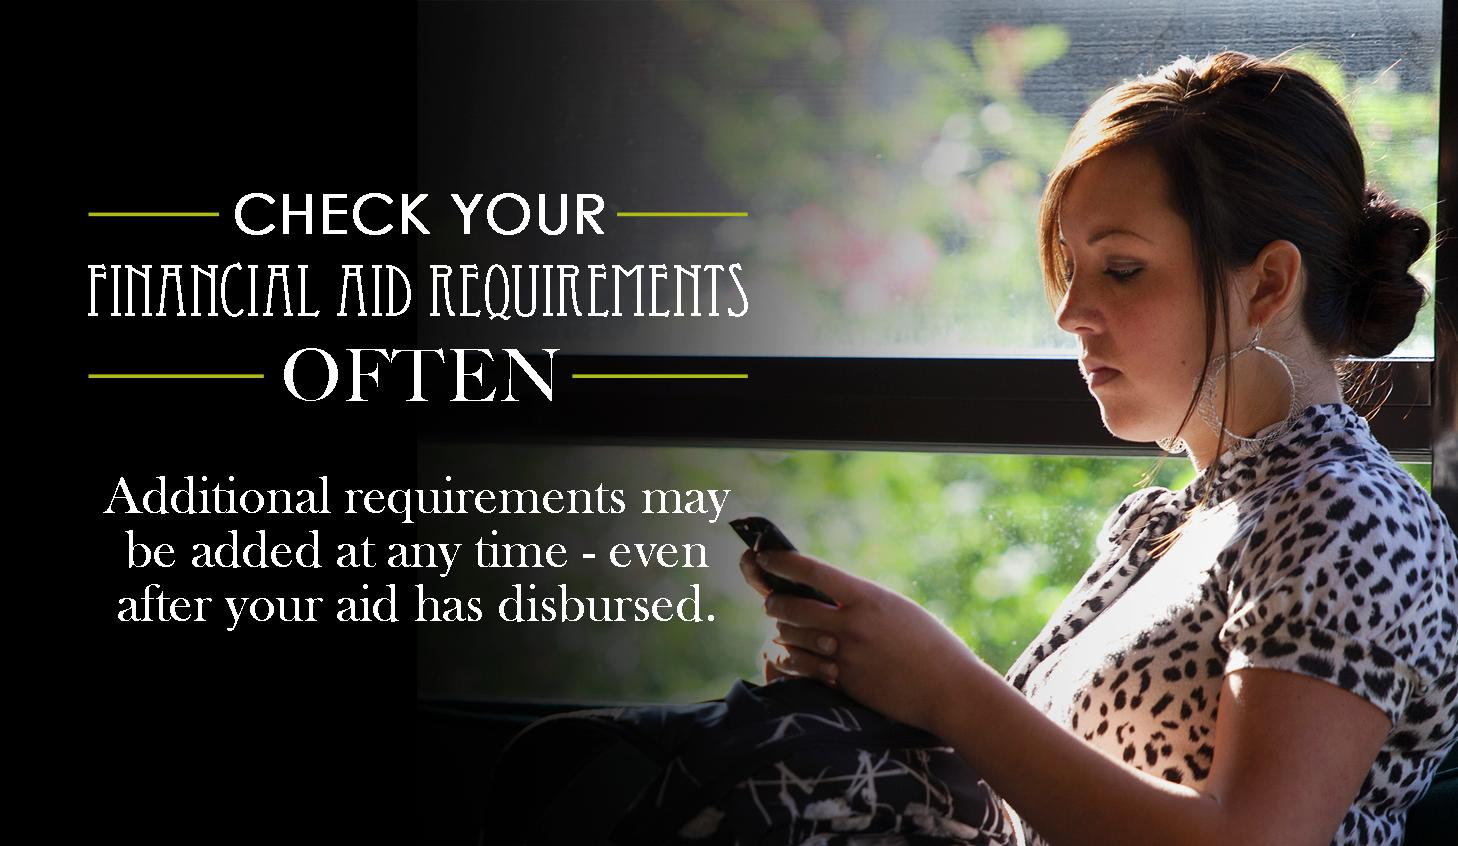 Check your financial aid requirements often